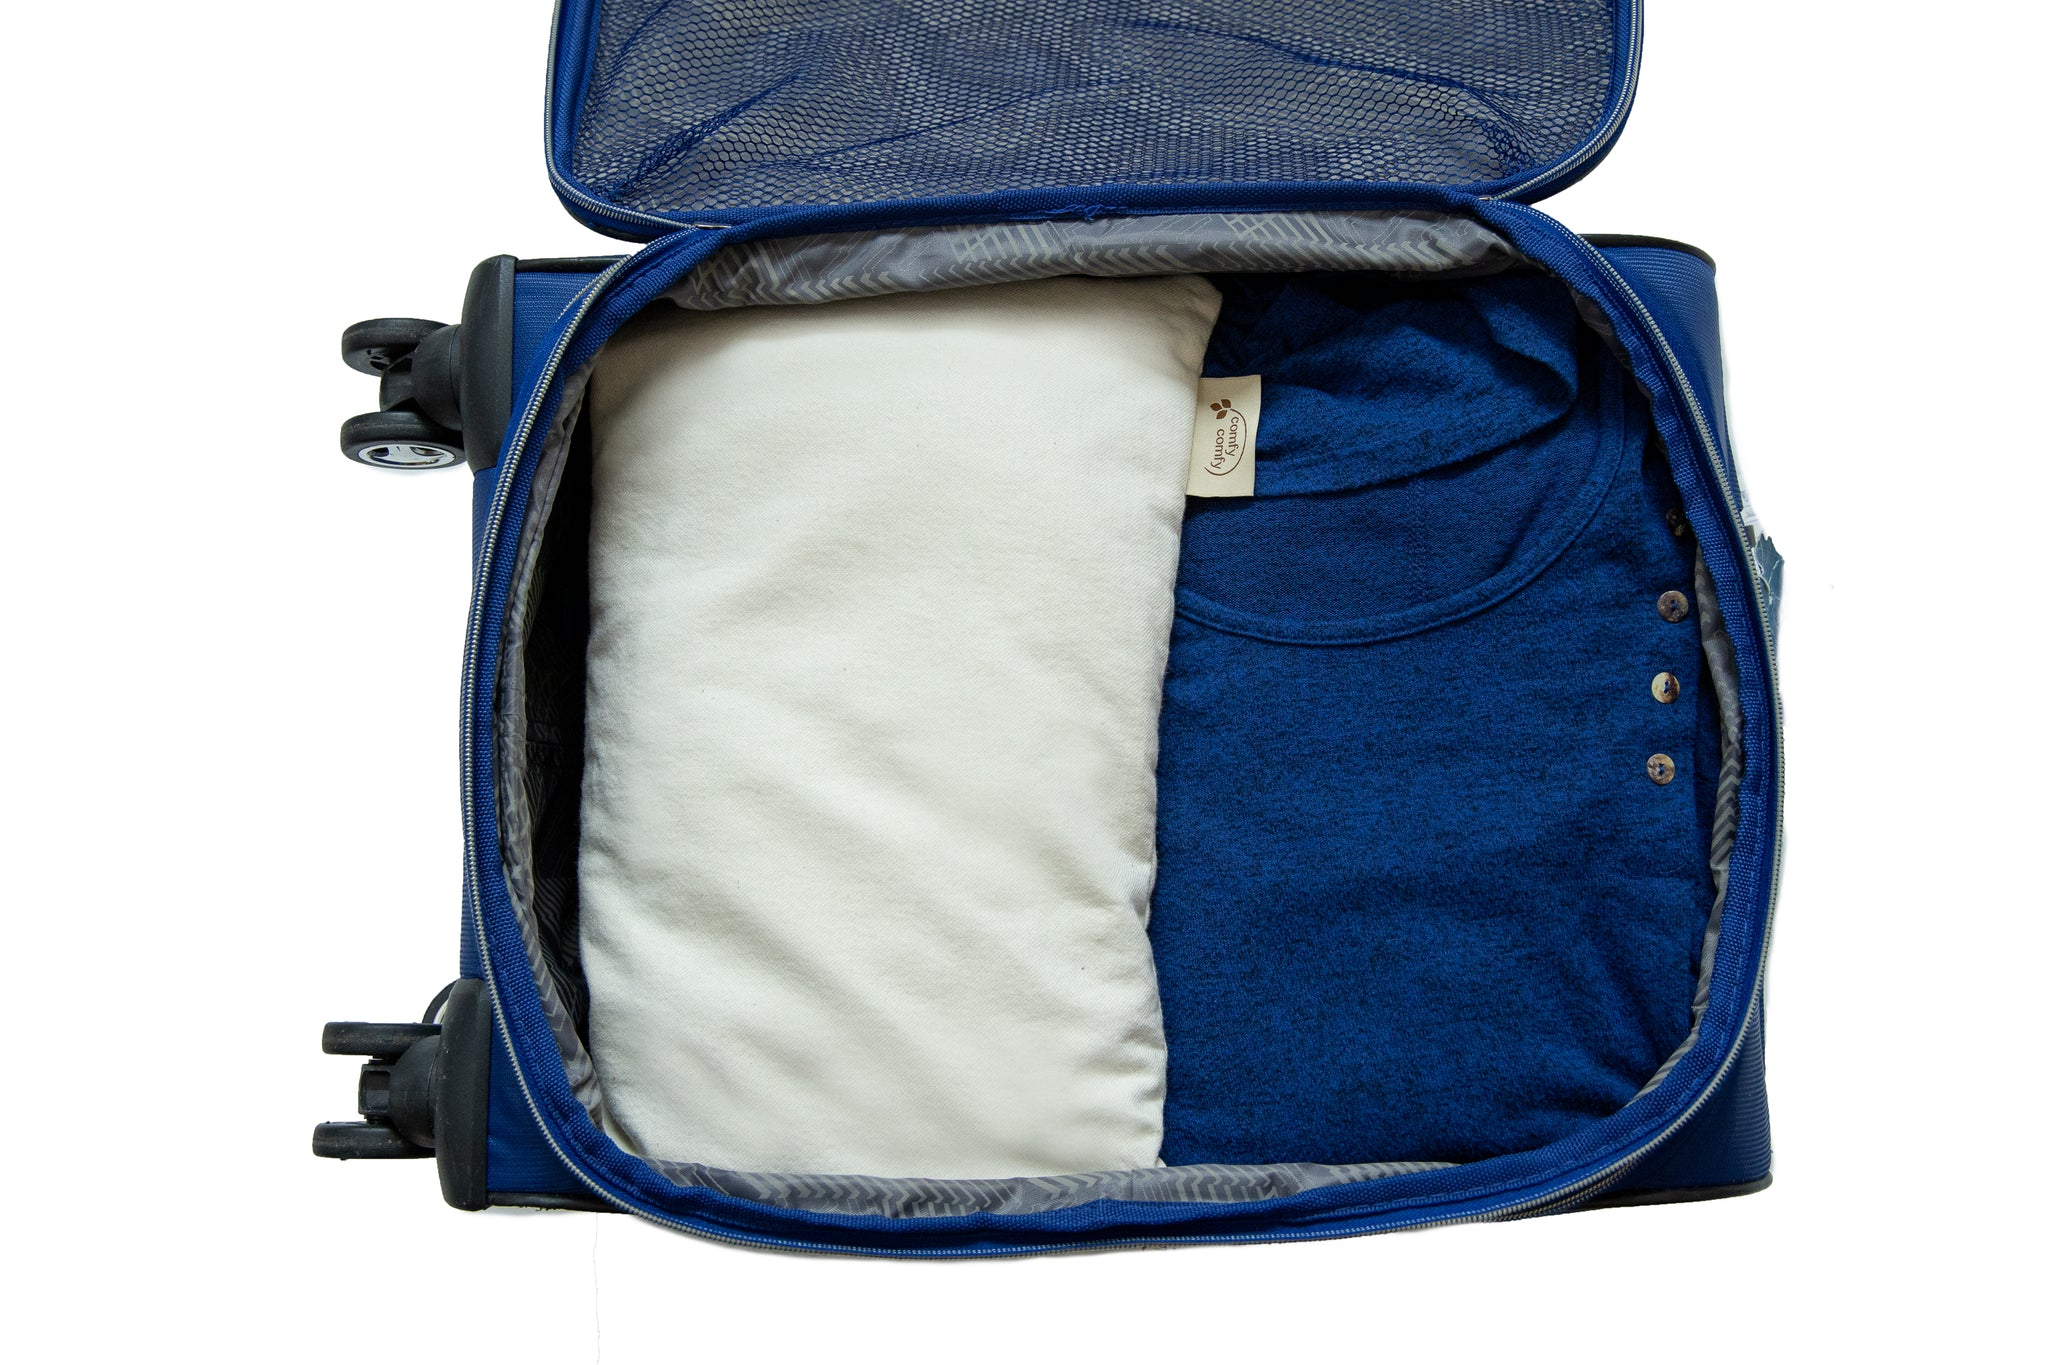 Travel pillow in carry on suitcase